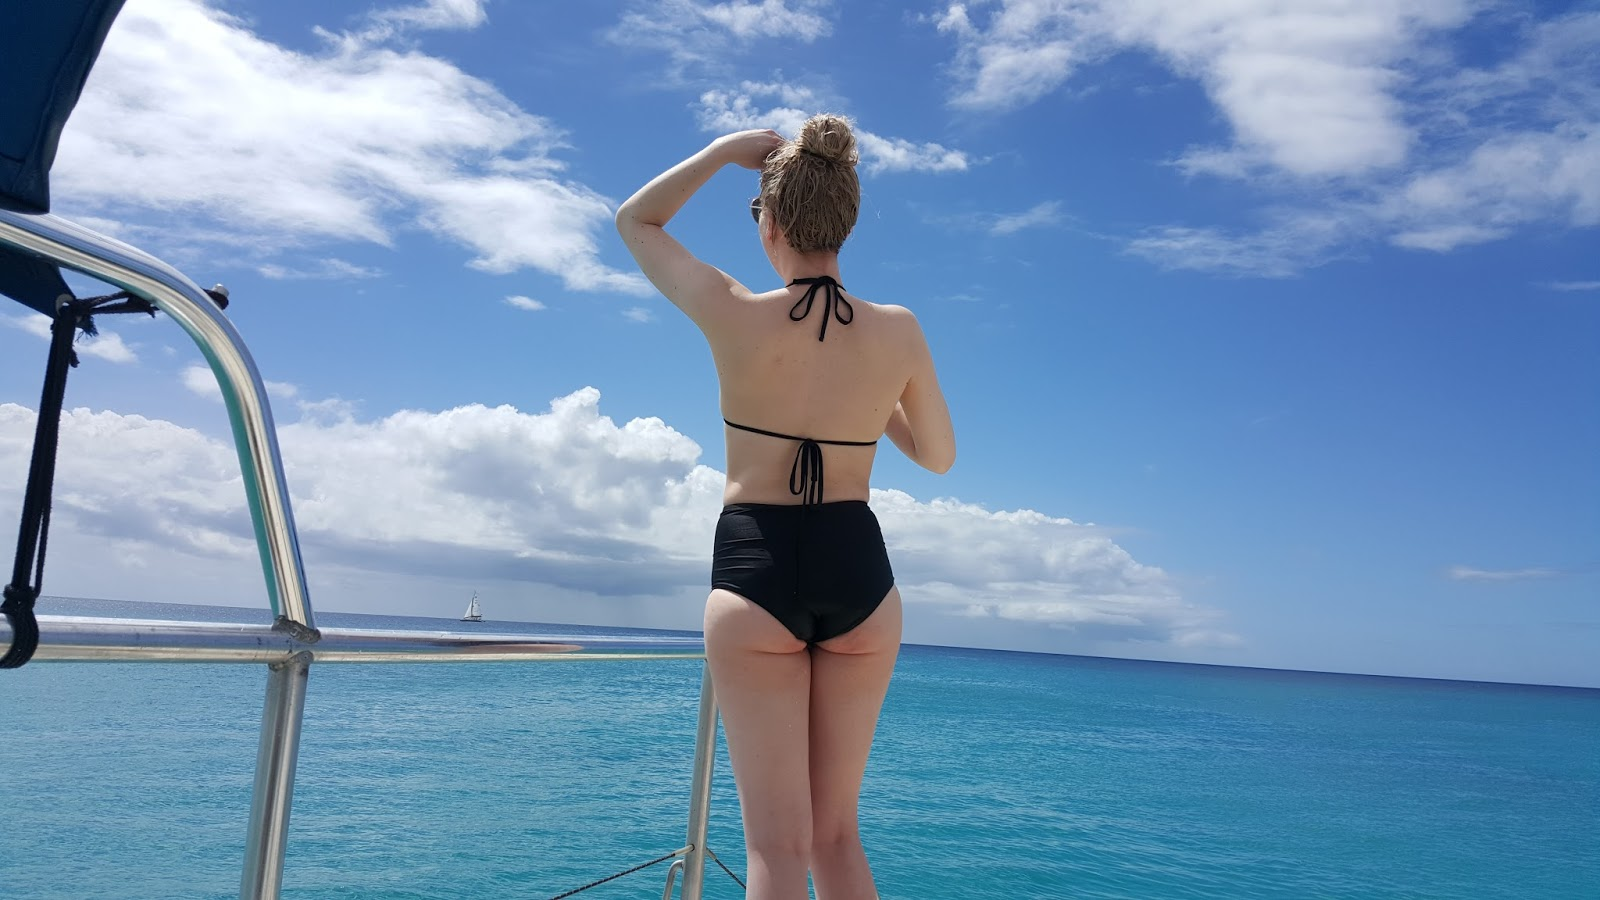 Chloe Gordon year in review Barbados bikini